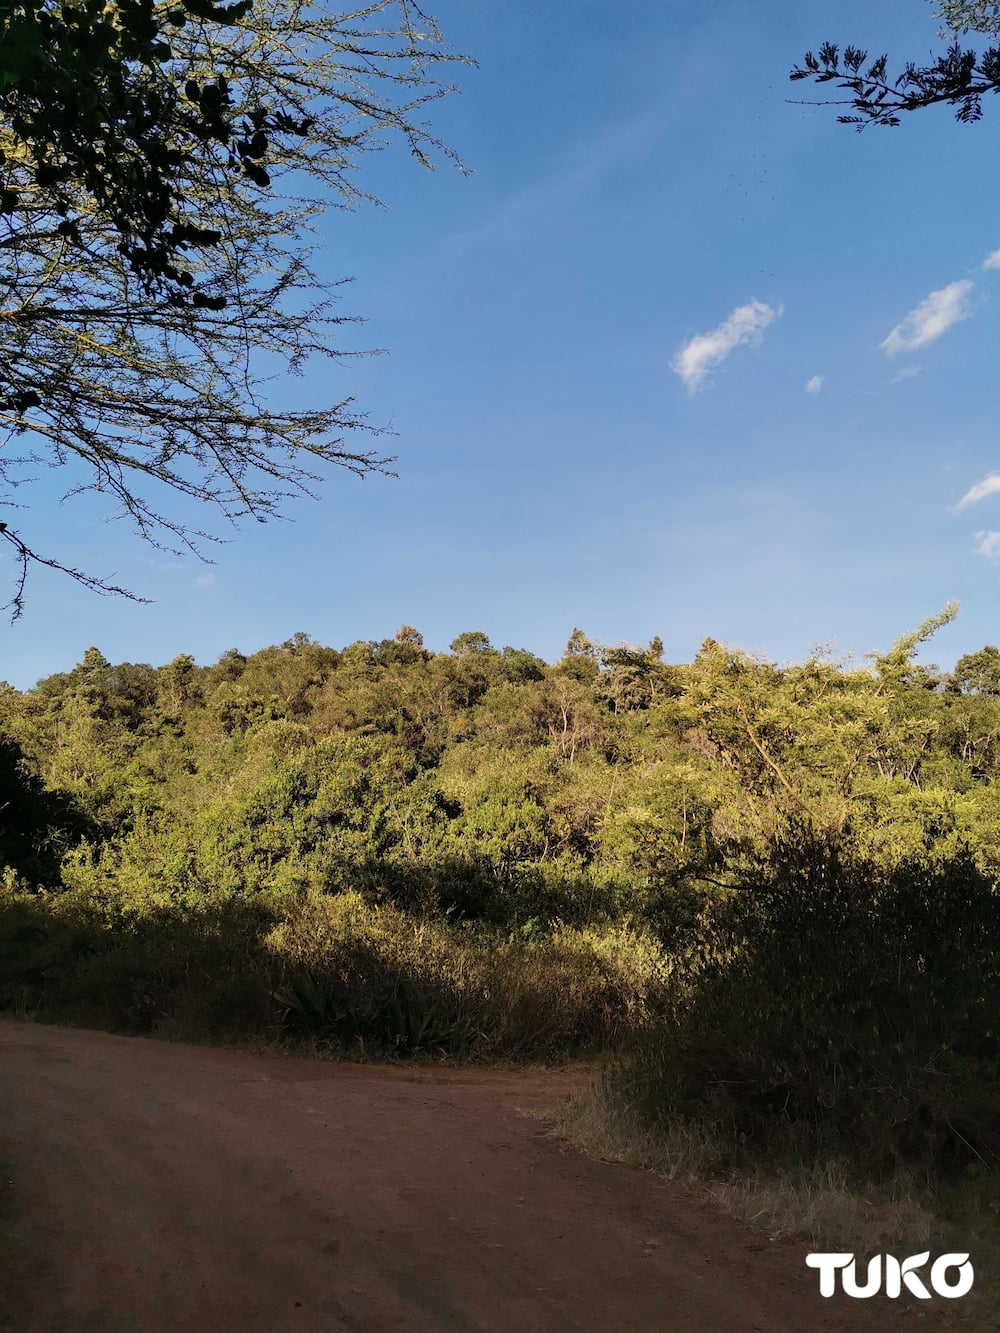 5 magical spots in Nairobi fit for first romantic dates